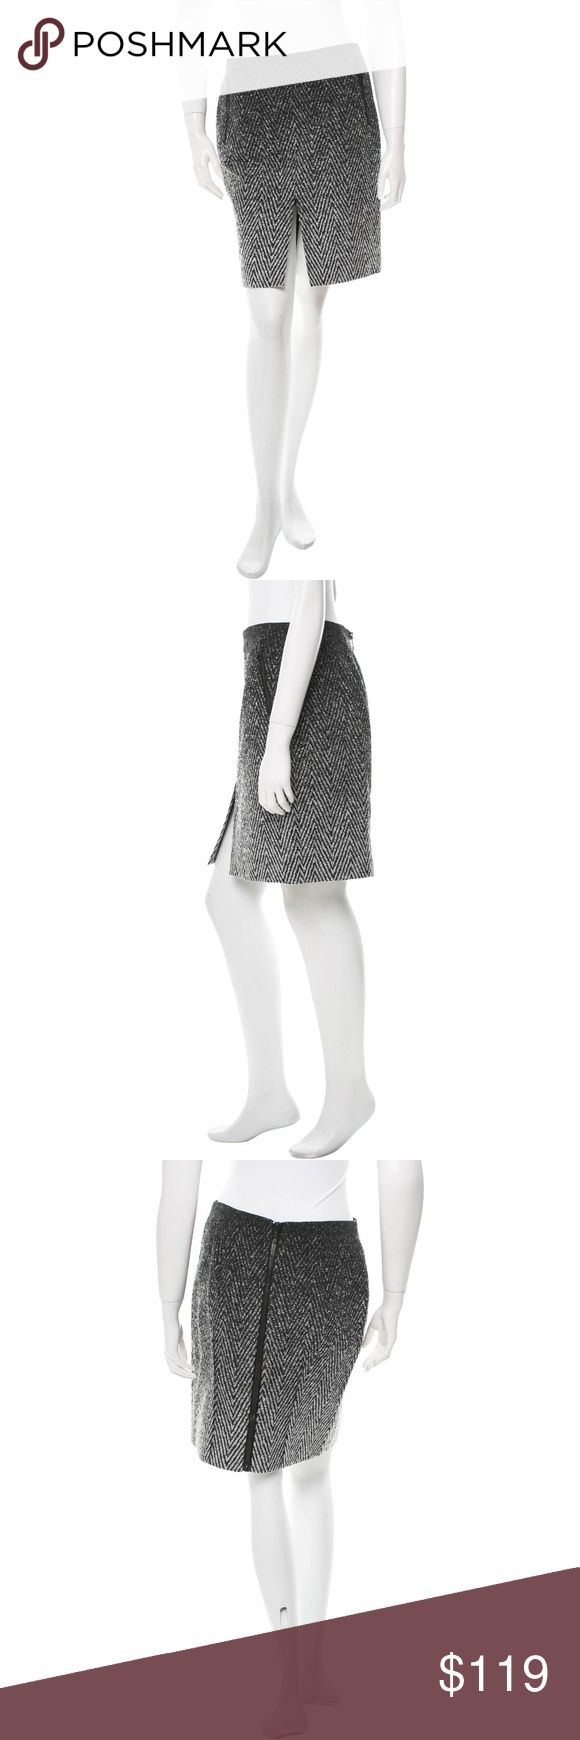 "rag & bone • chevron ombre wool zip mini skirt • 4 Chic details add edge to this mini skirt from Rag & Bone.  FEATURES • textured ombre degrade herringbone pattern • exposed zip pockets at hips • front center slit • exposed full length down center back • mini length   COLOR • black/white/gray   SIZE + FIT • size 4 • 30"" waist, 38"" hips, 19.5"" length   MATERIAL • 33% polyester, 33% cotton, 22% polychloride, 7% polyacetate, 5% wool • lining 100% polyester  CONDITION • gently used, in very good…"